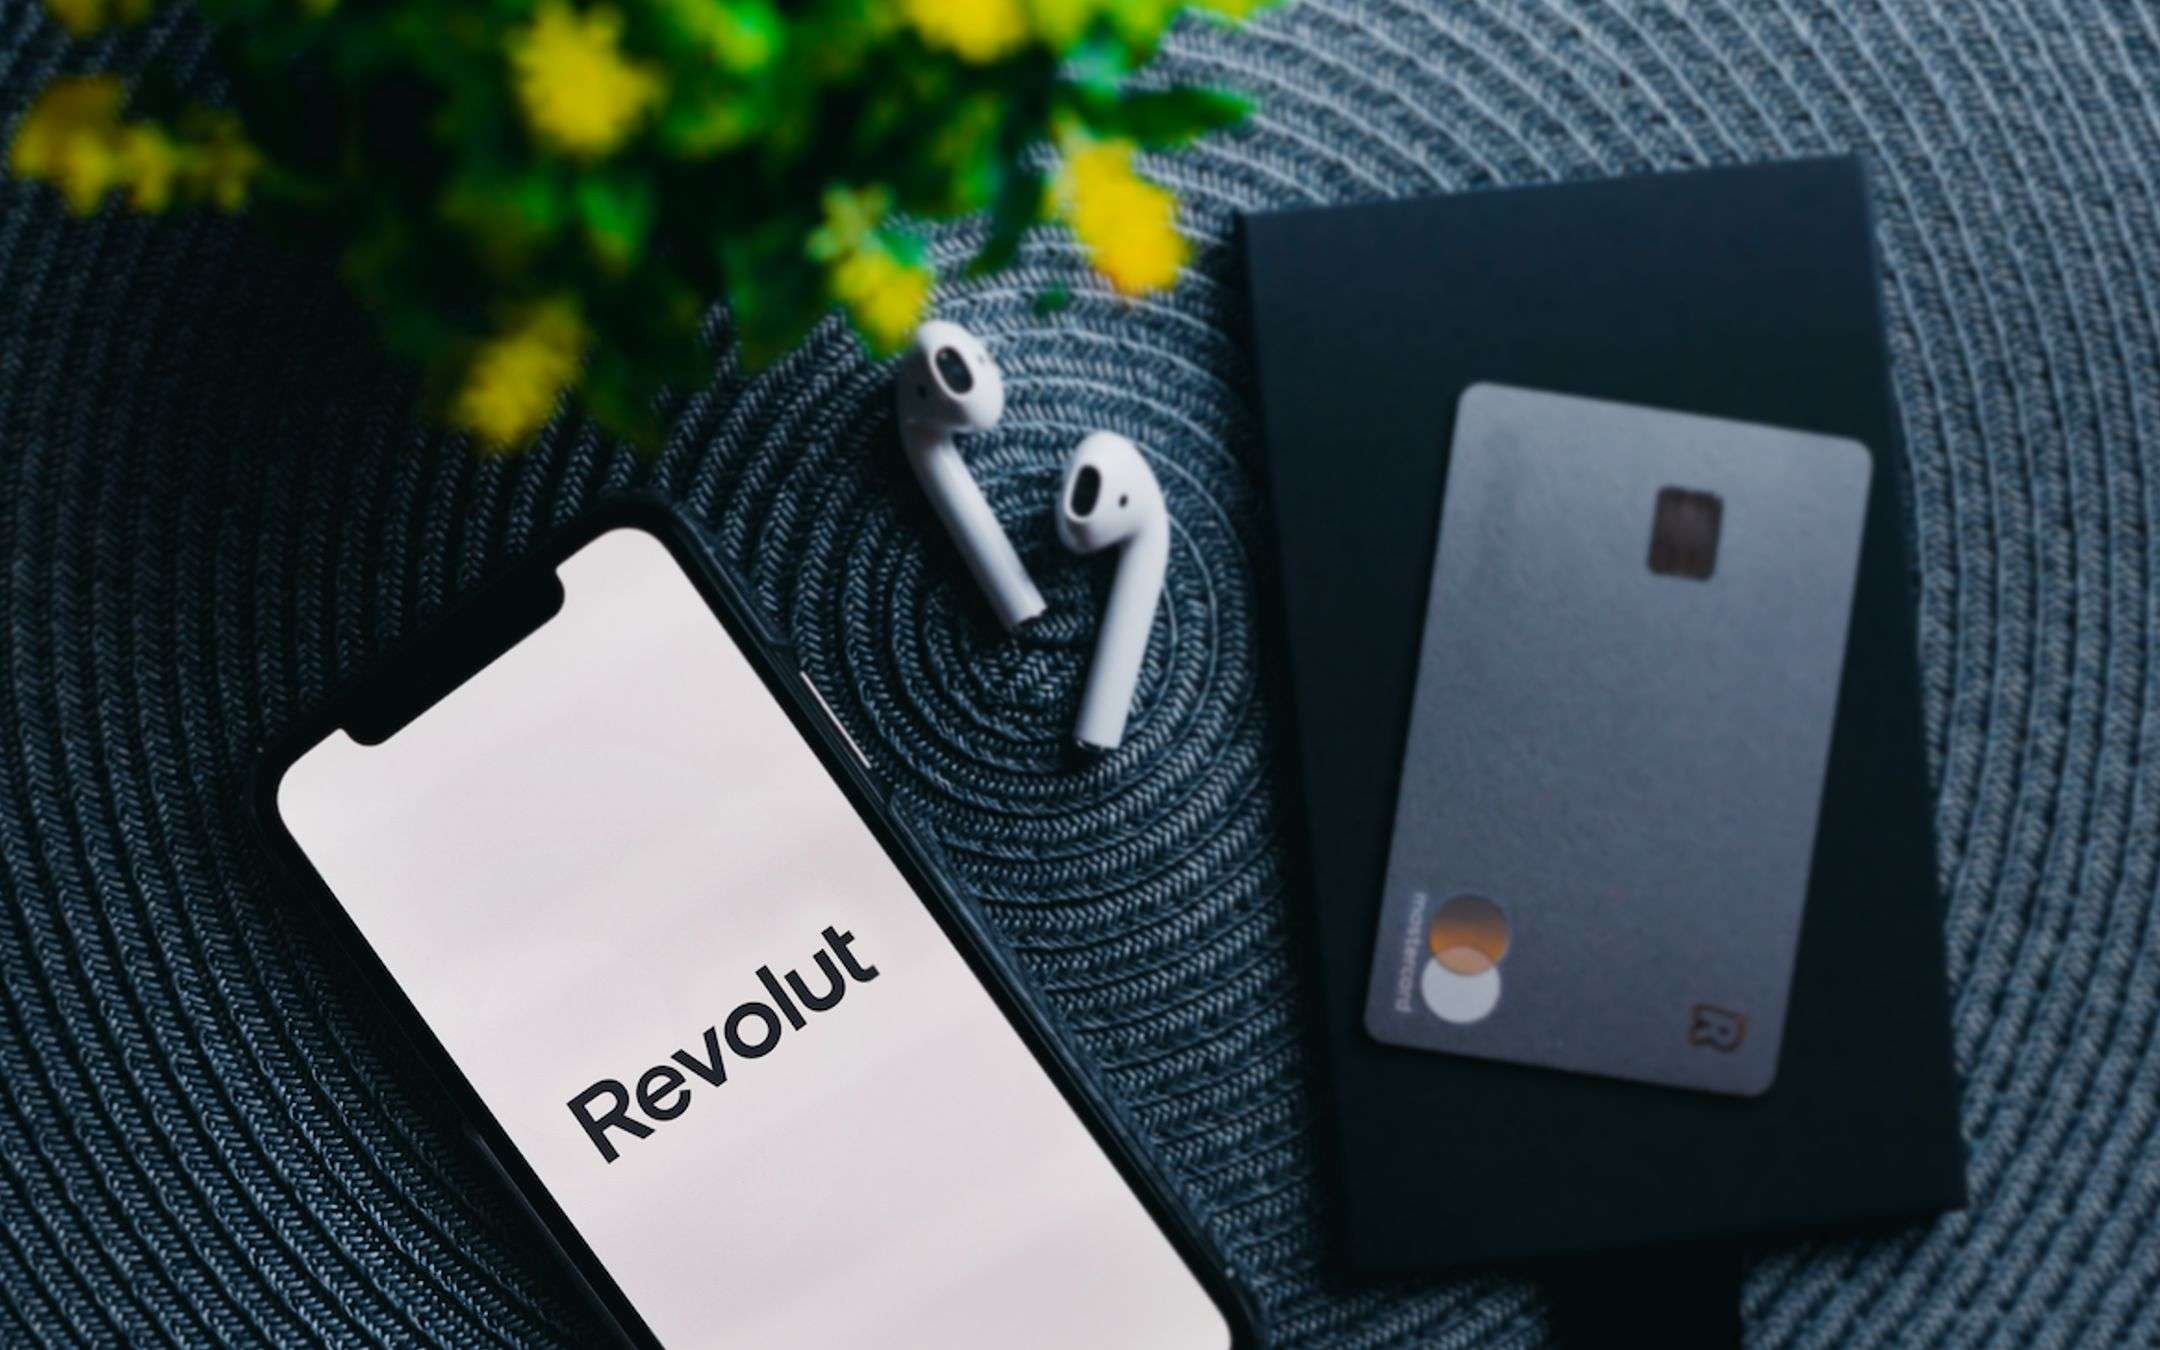 Revolut, Italy is increasingly contactless